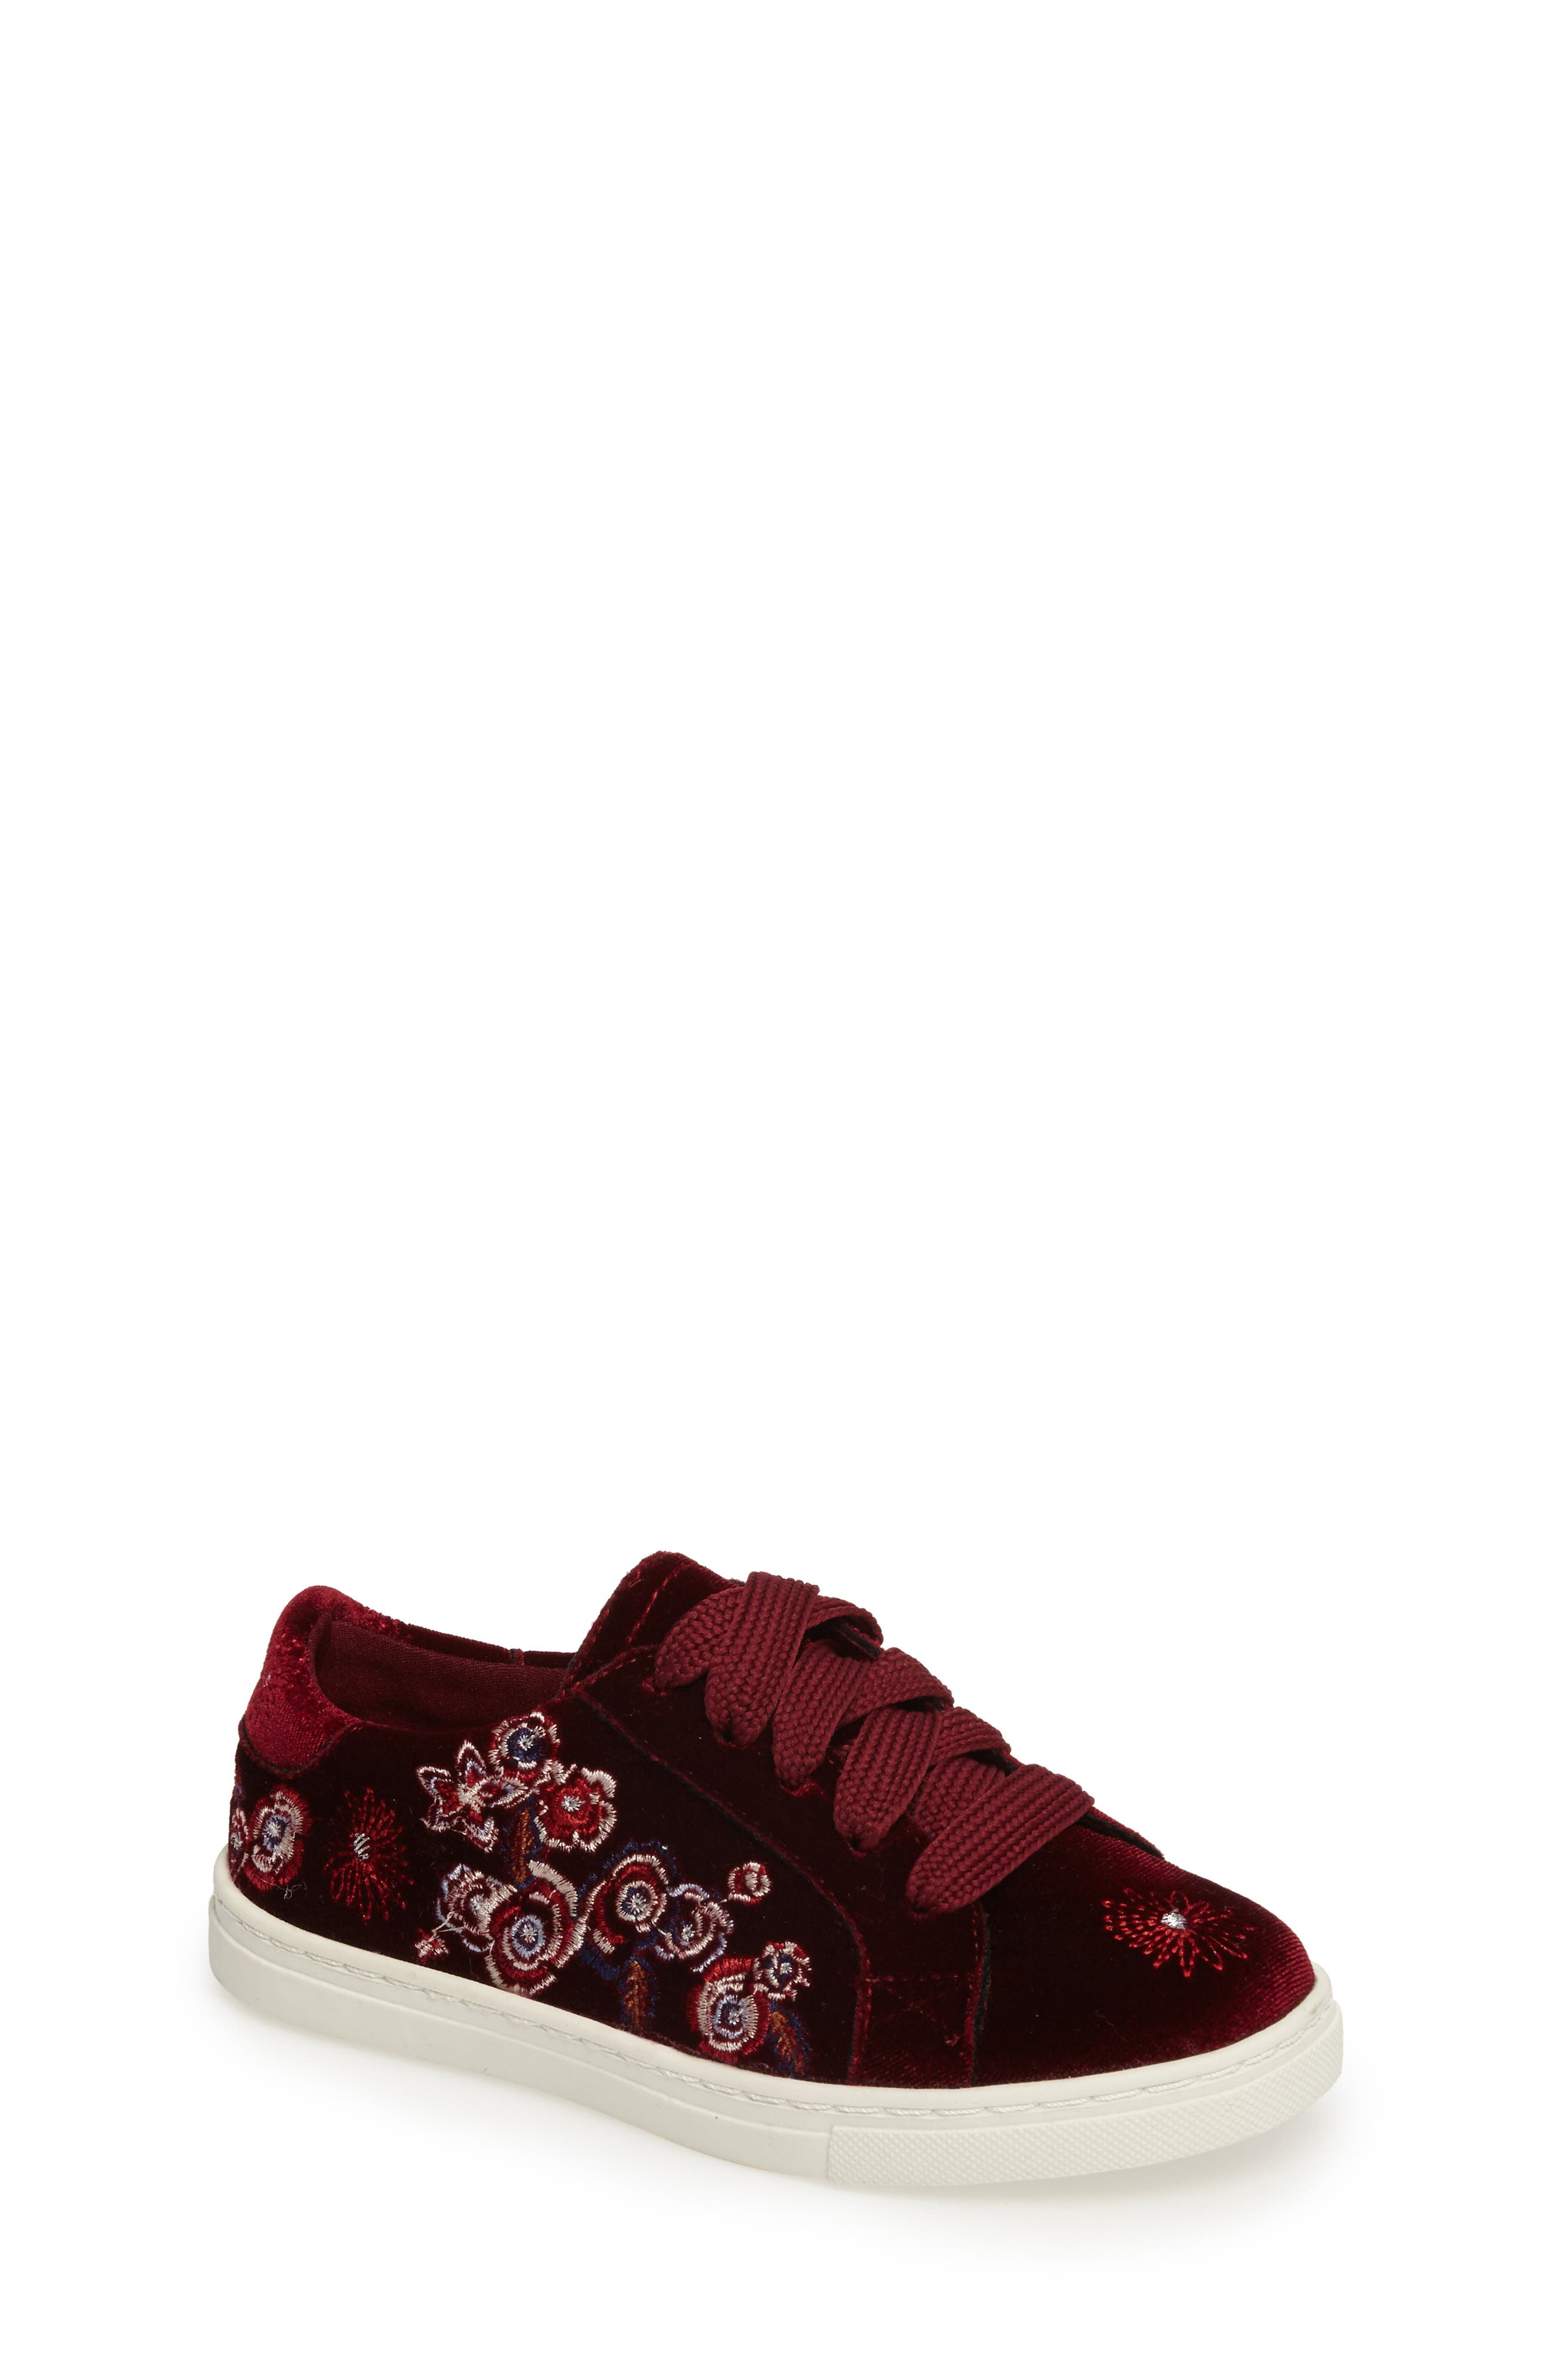 Dolce Vita Zolly Floral Embroidered Sneaker (Toddler, Little Kid & Big Kid)